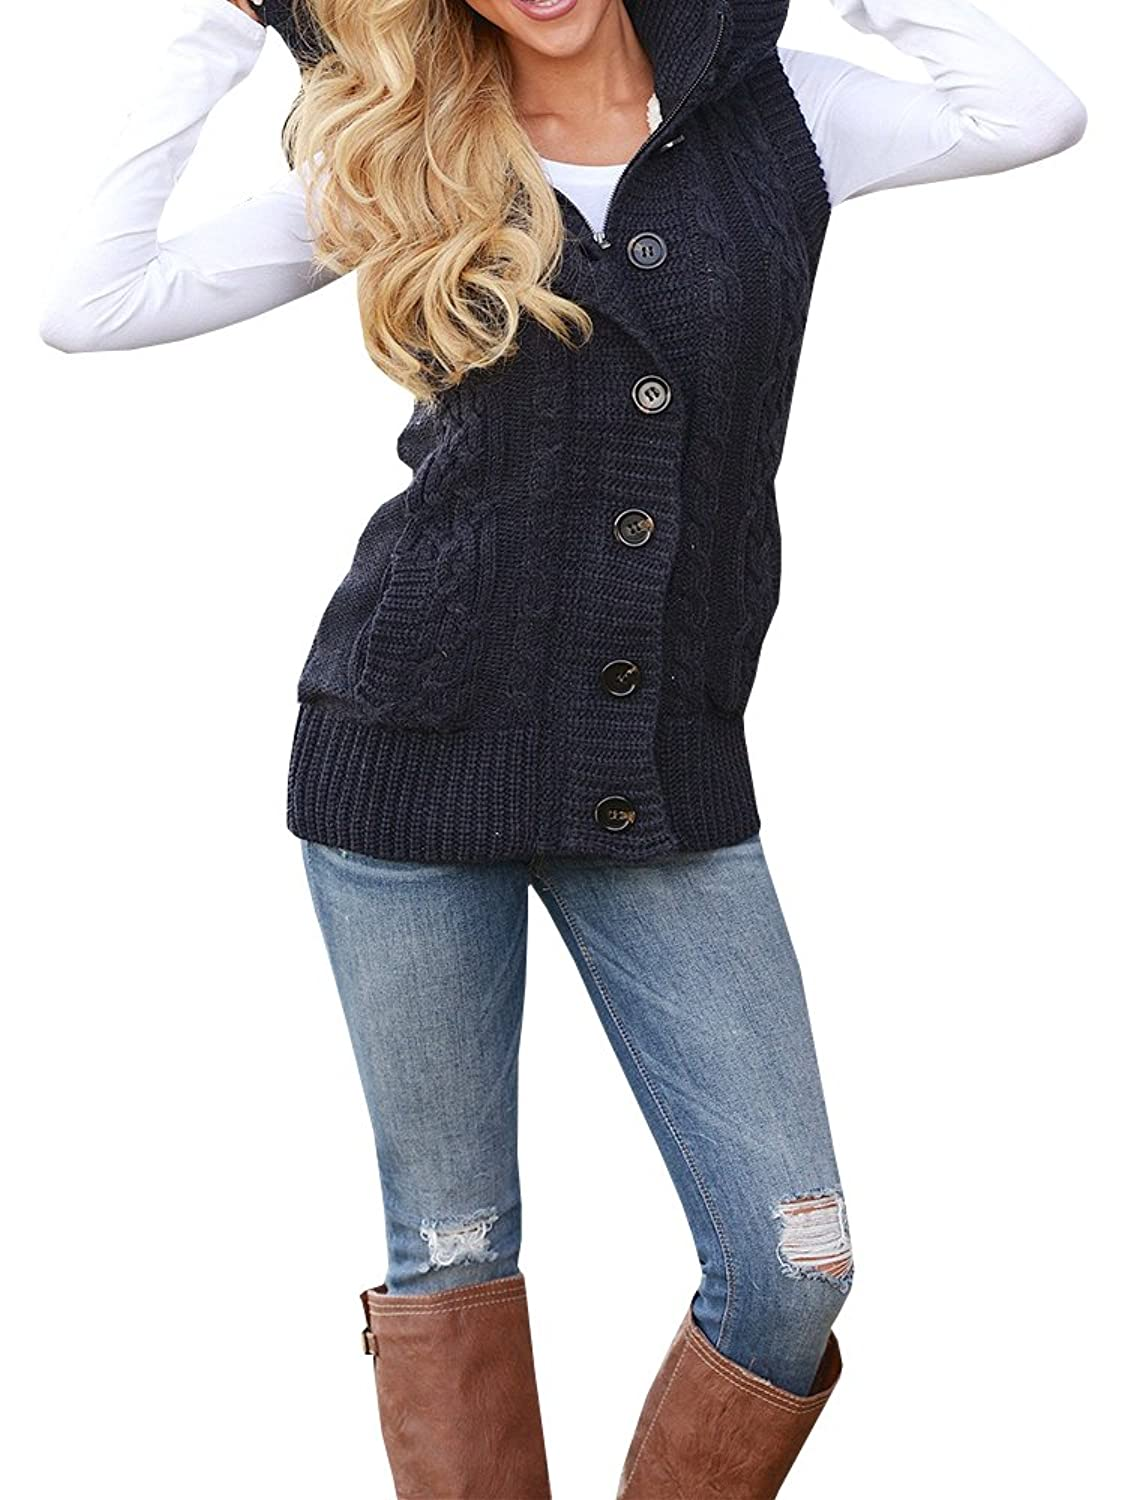 Imily Bela Womens Cable Knit Sleeveless Hoodies Button Down Sweater